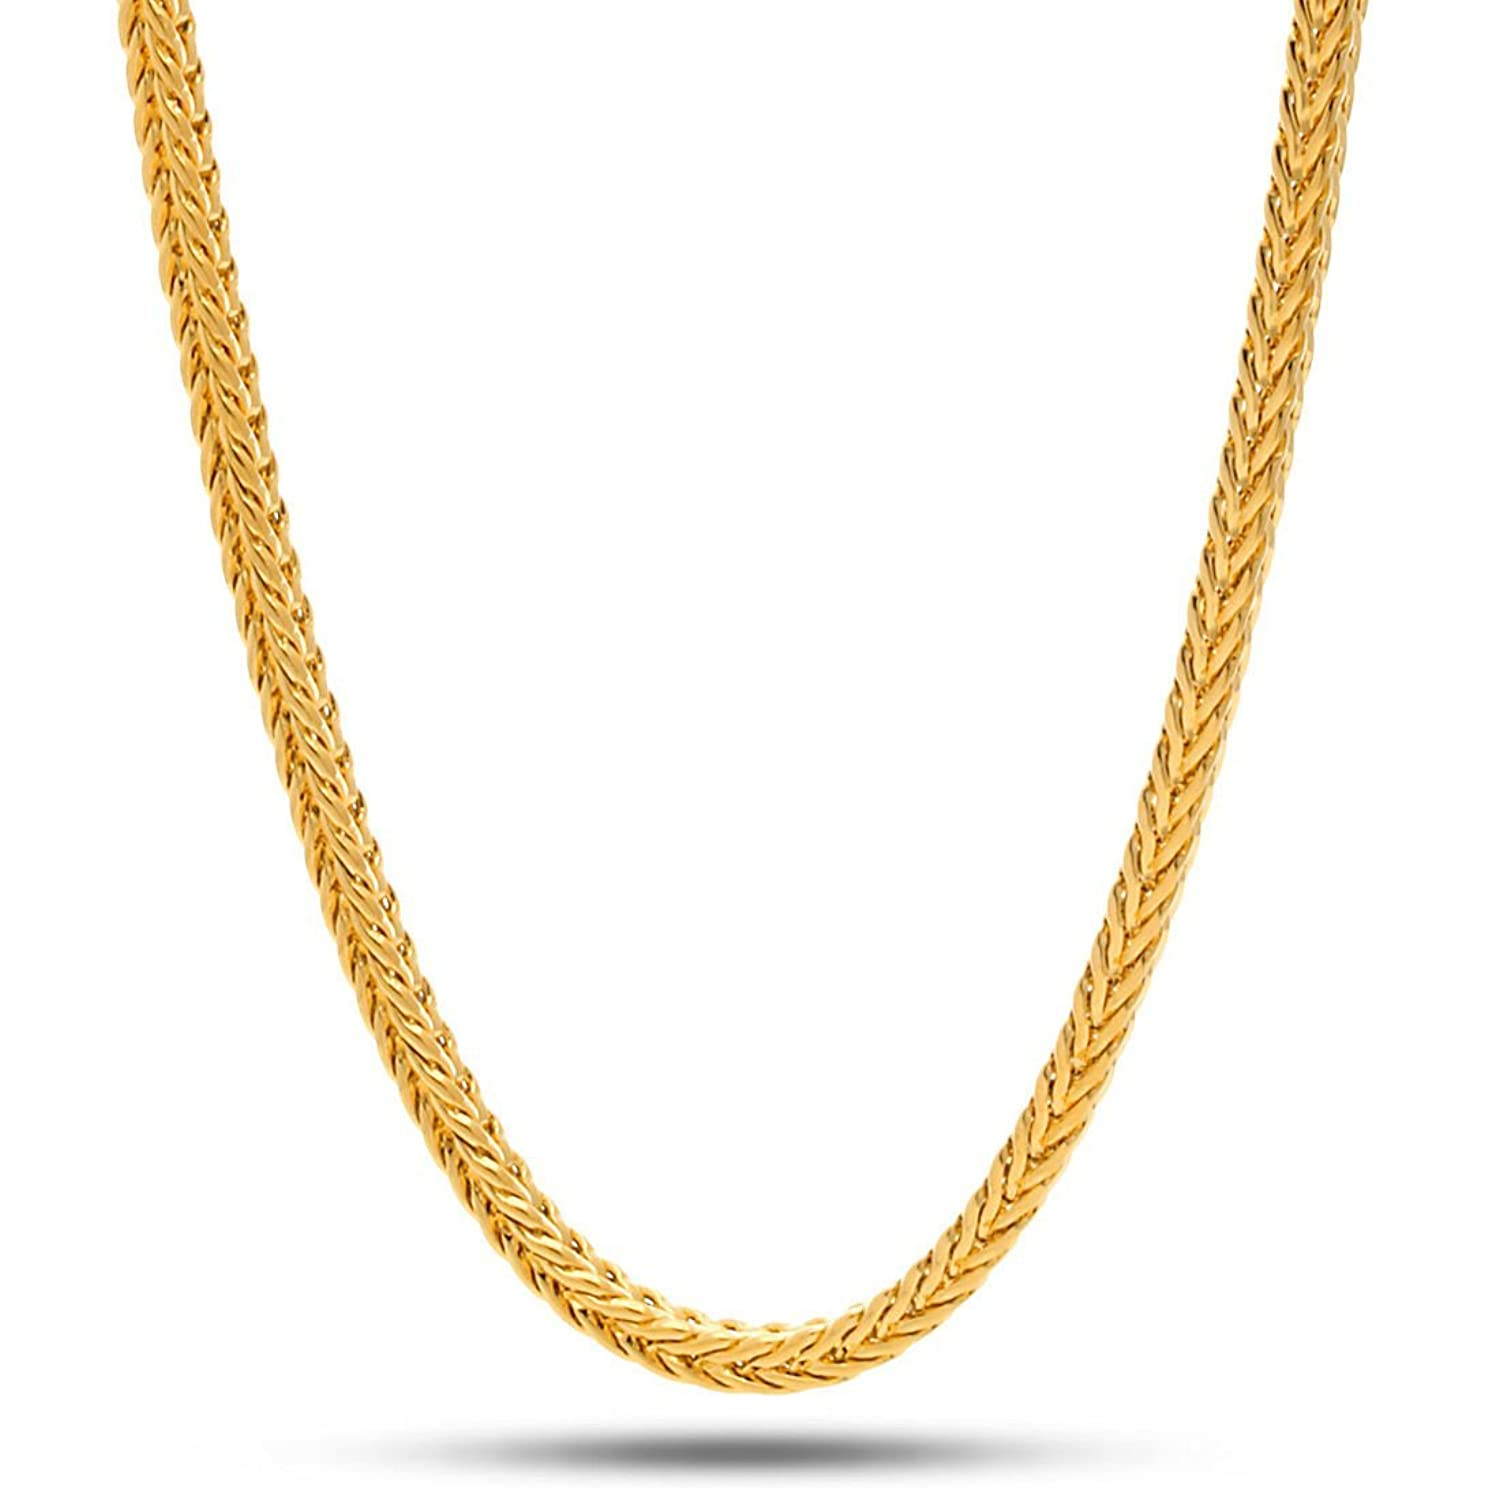 gold yellow pin chain necklace gram chains gift box karat filled